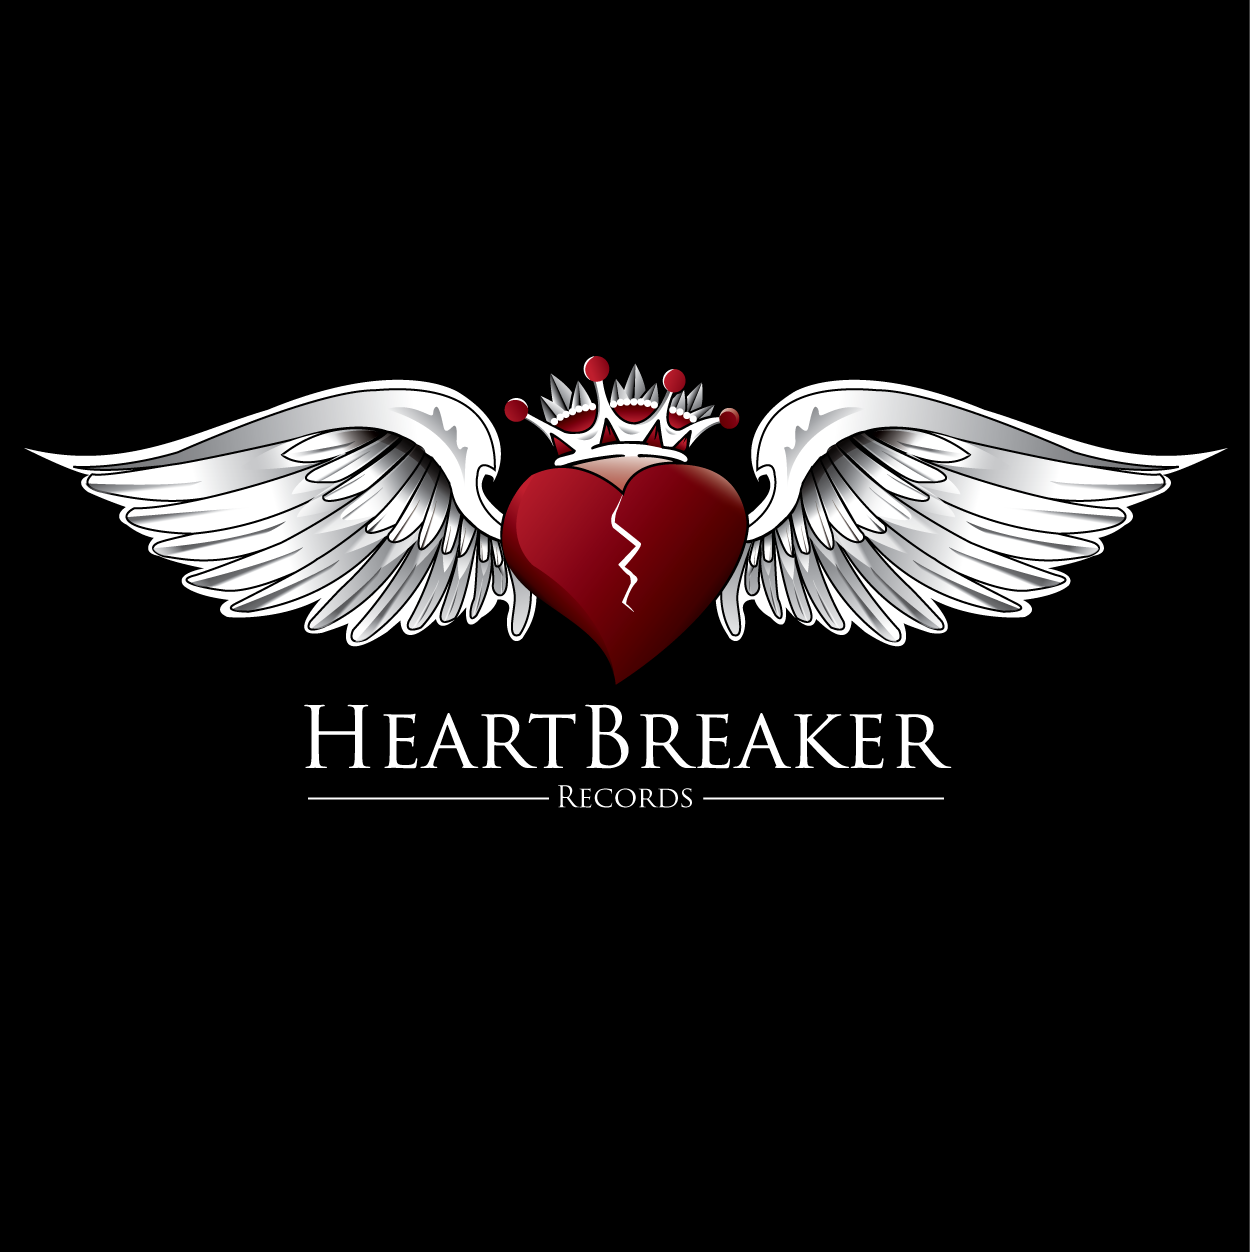 Logo Design by trabas - Entry No. 64 in the Logo Design Contest Heartbreaker Records.